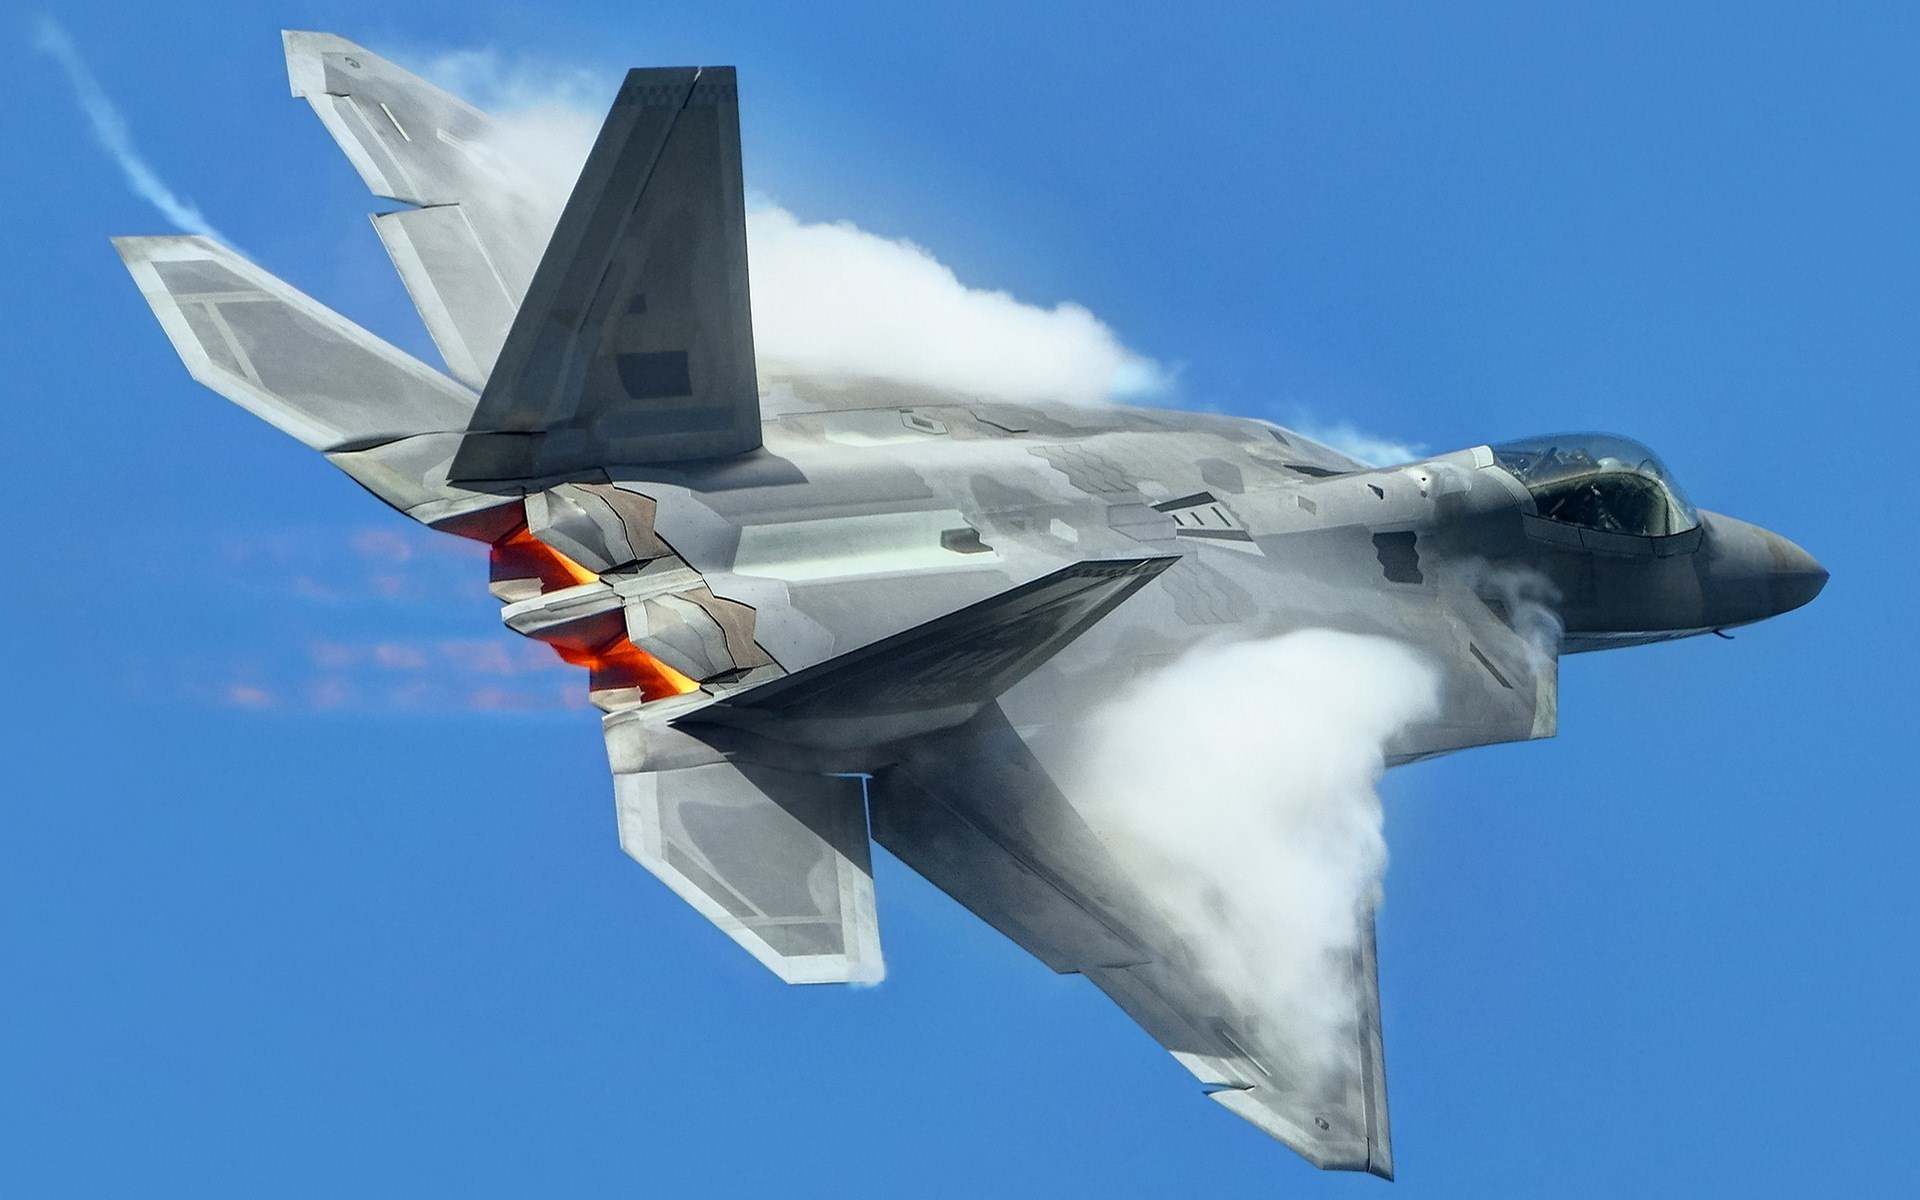 Fighter Aircraft Lockheed Martin F-22 Raptor